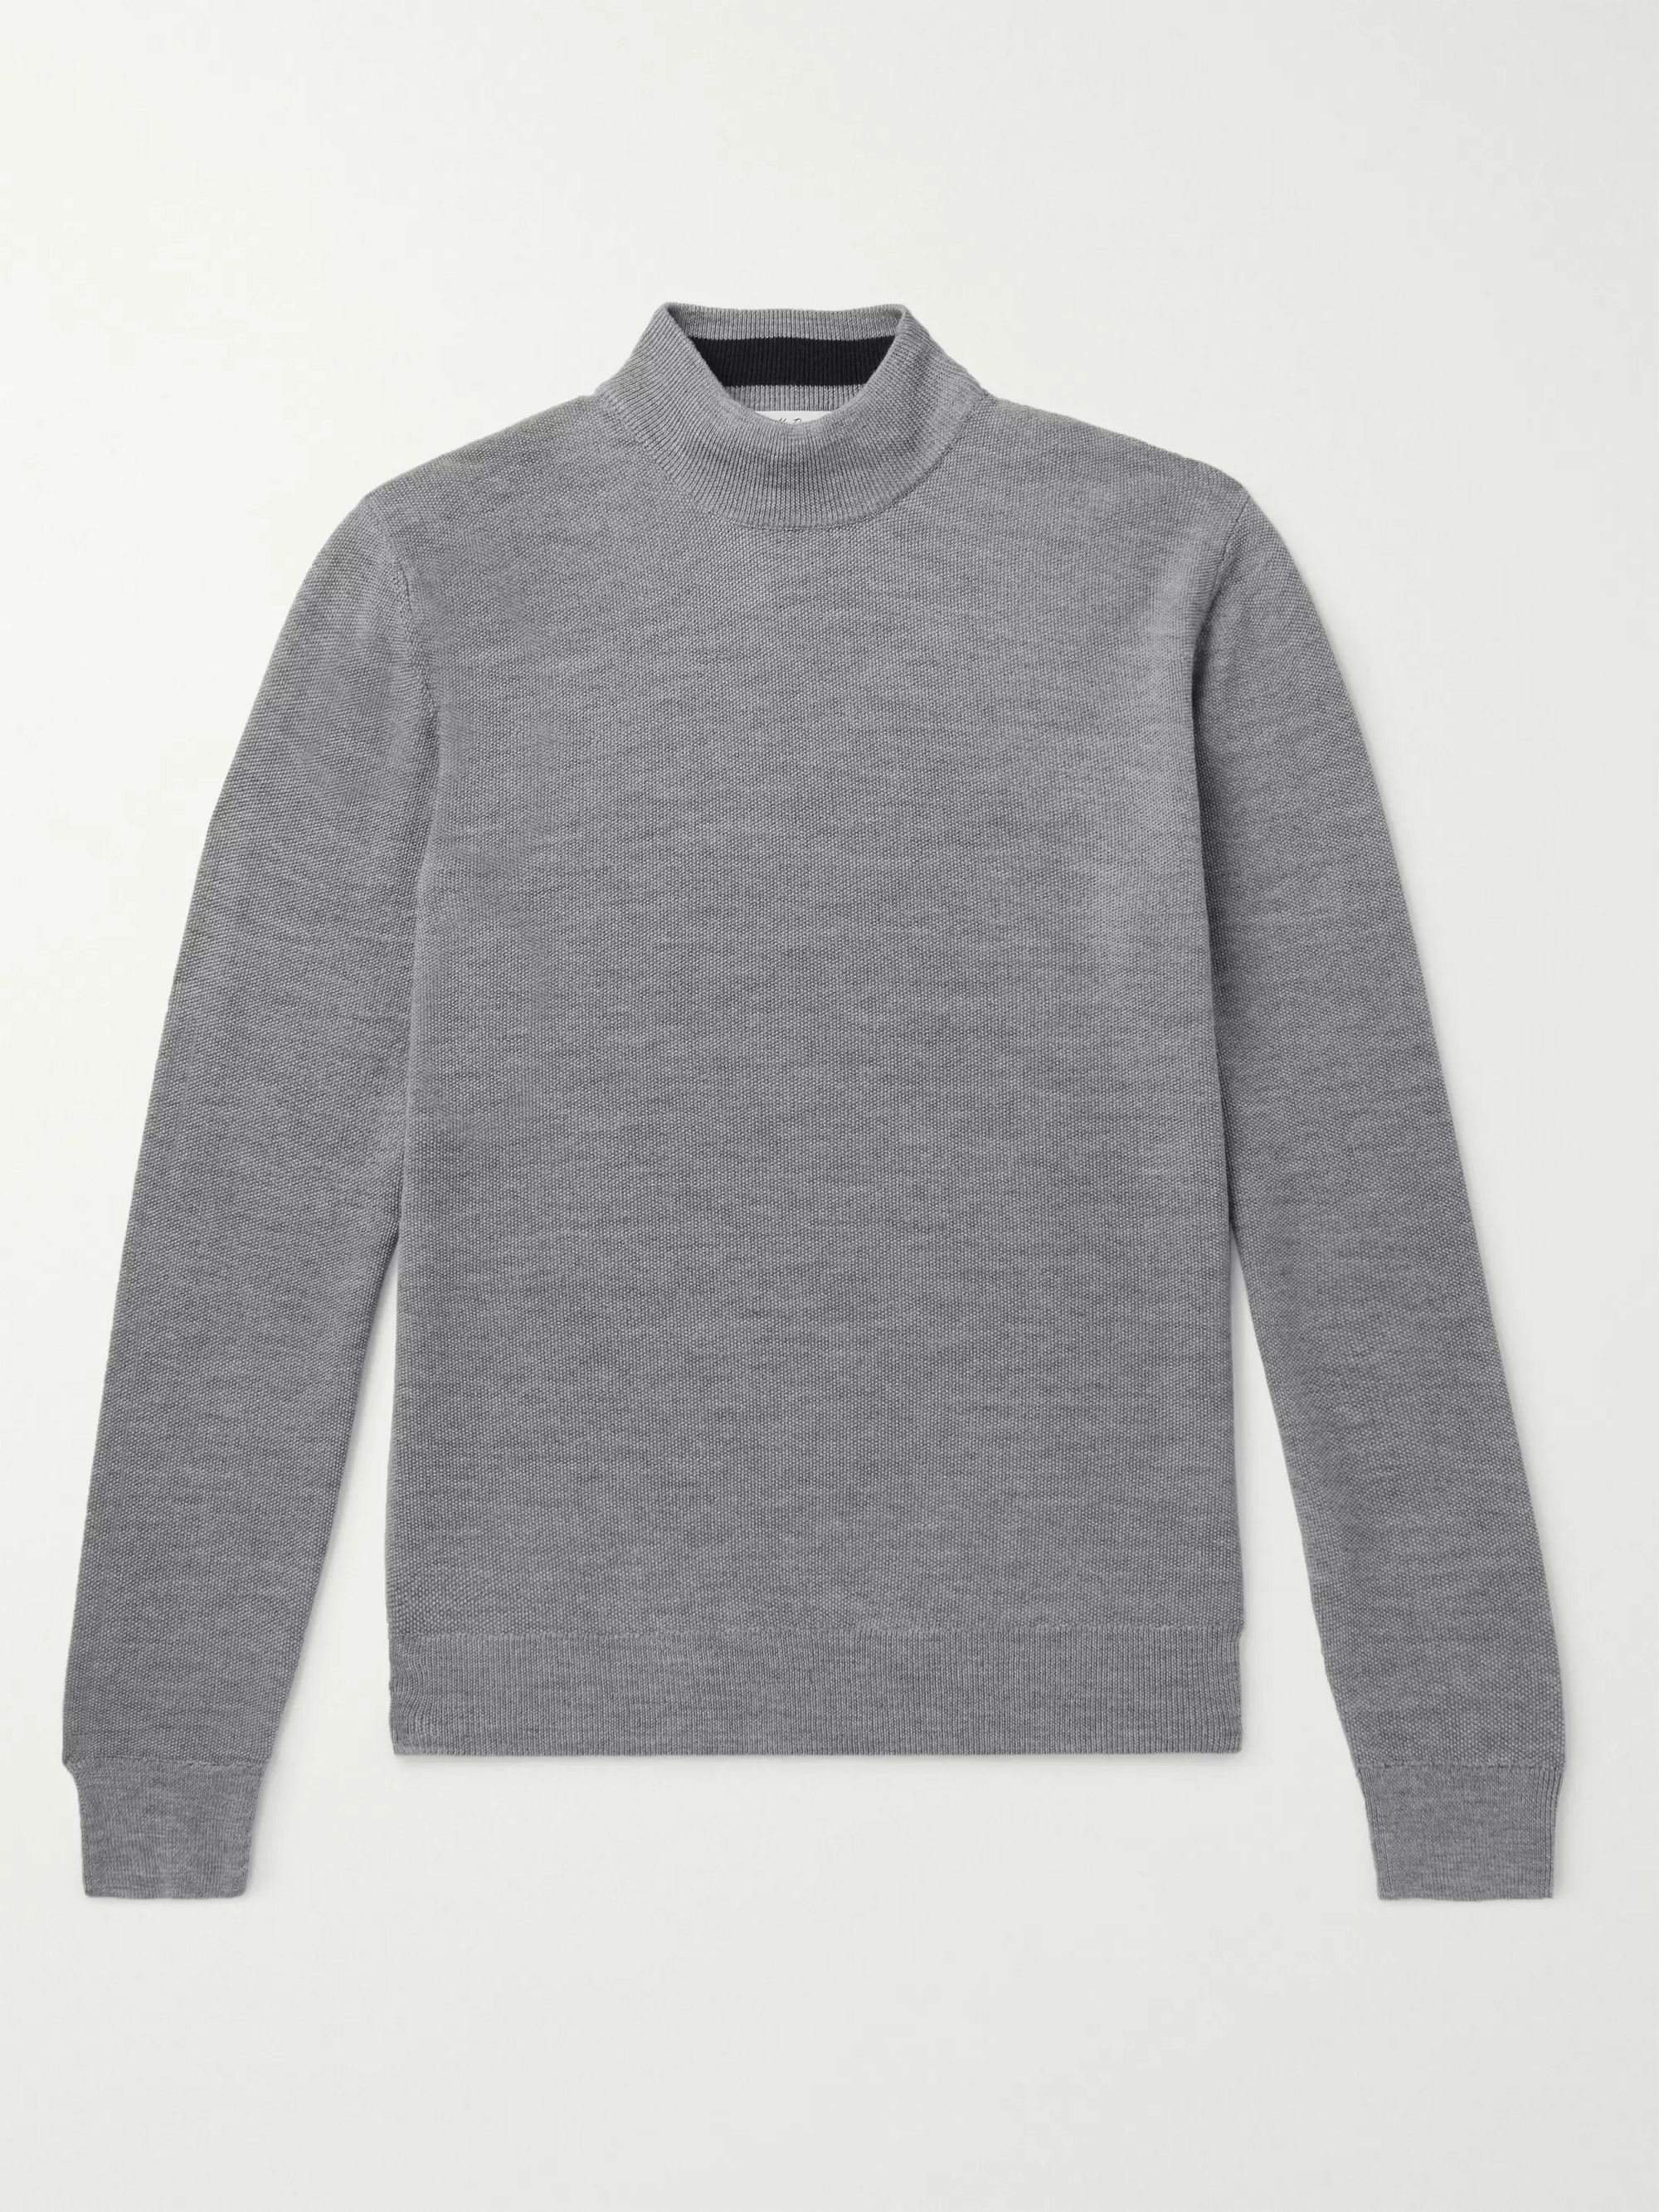 Mr P. Slim-Fit Merino Wool-Piqué Rollneck Sweater